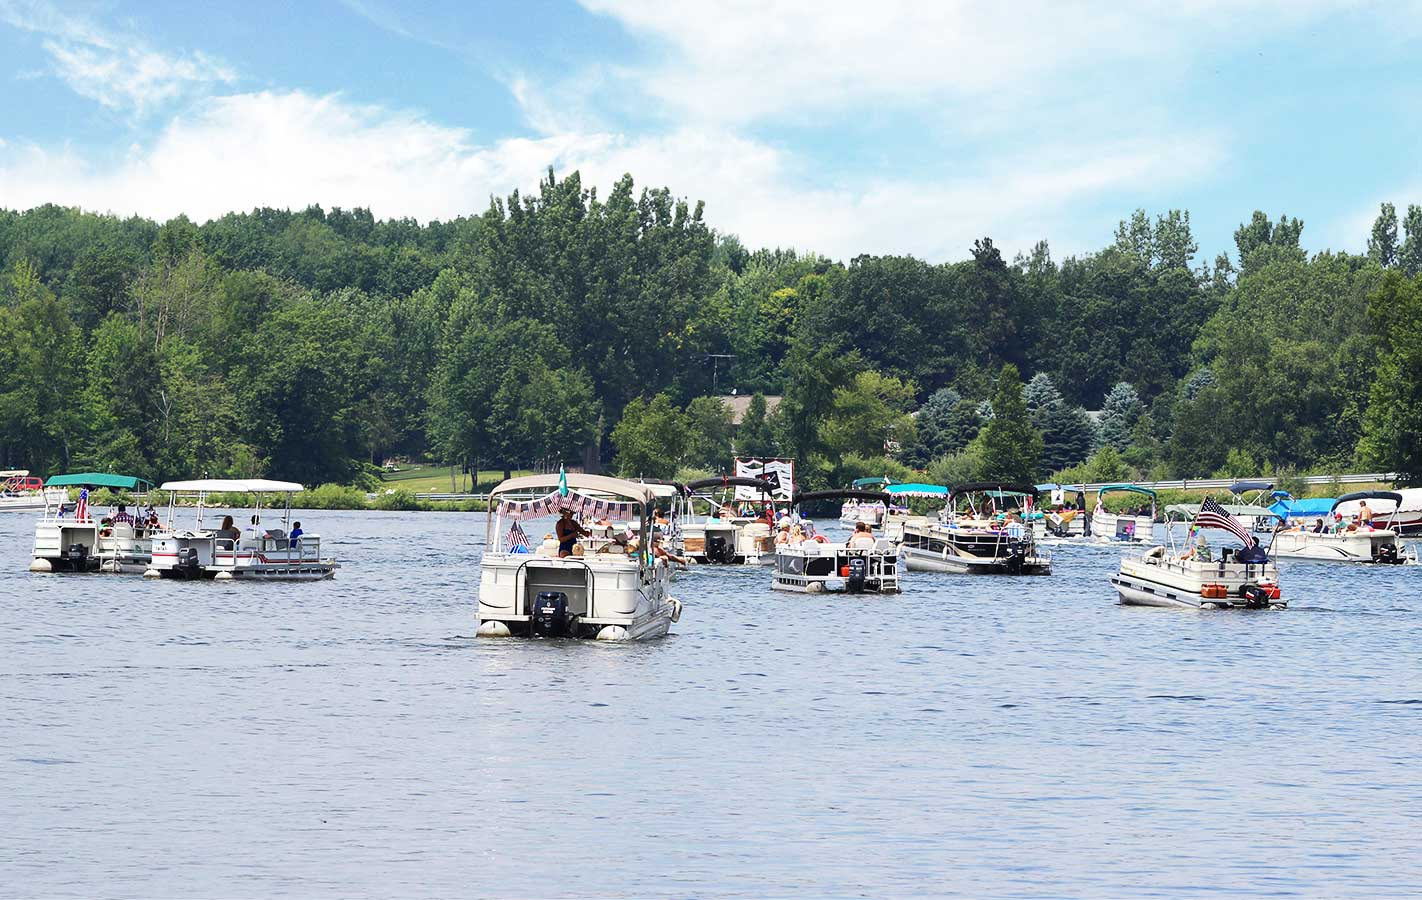 boating on the lakes at Canadian lakes